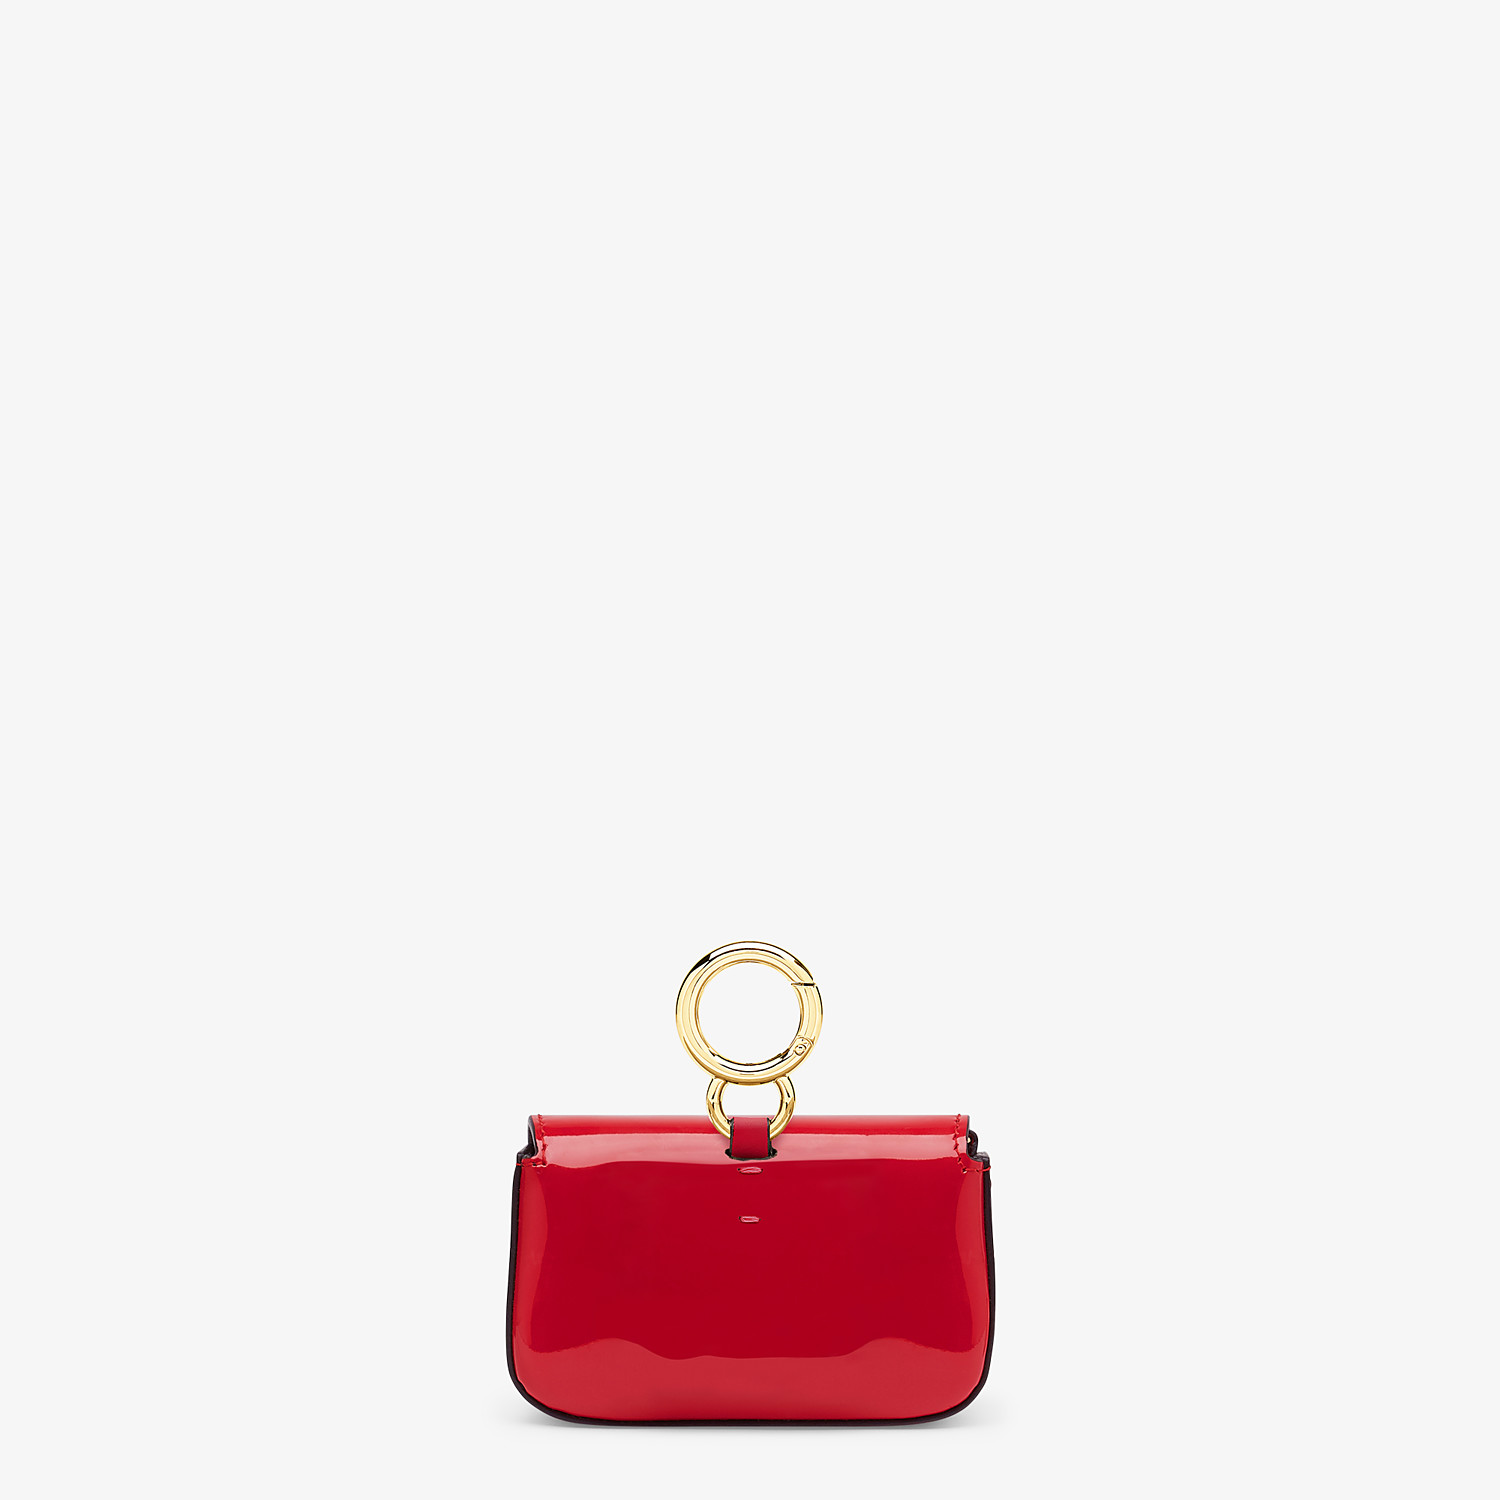 FENDI NANO BAGUETTE CHARM - Red patent leather charm - view 4 detail